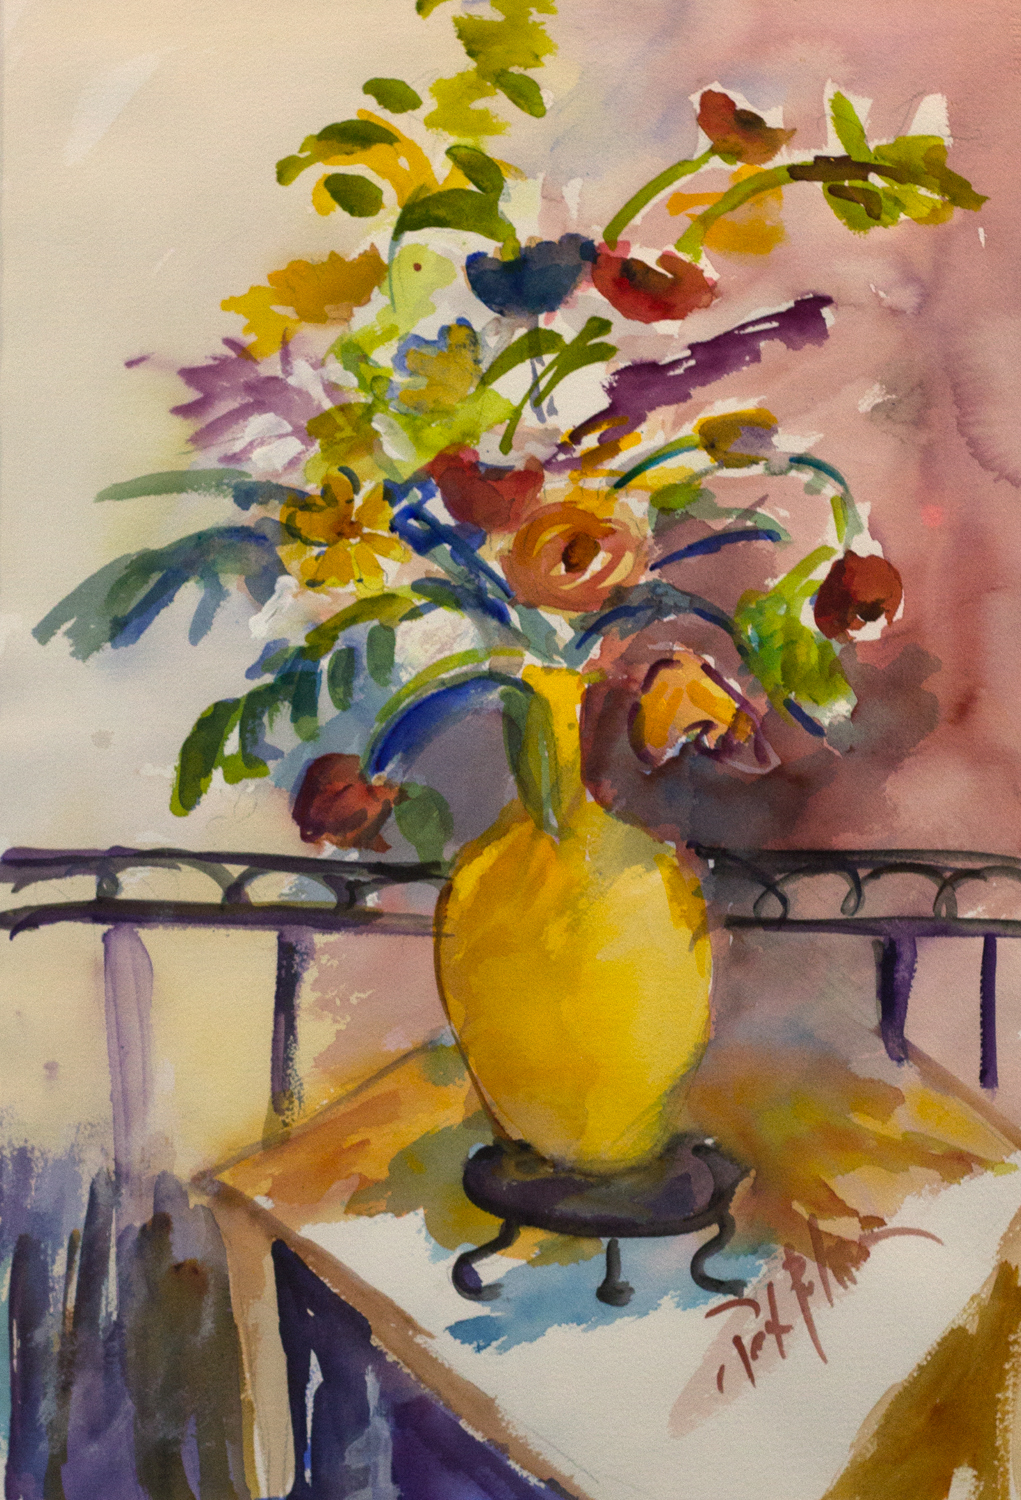 Still Life 1, Pat Palmer, Watercolor, Donated by the Artist